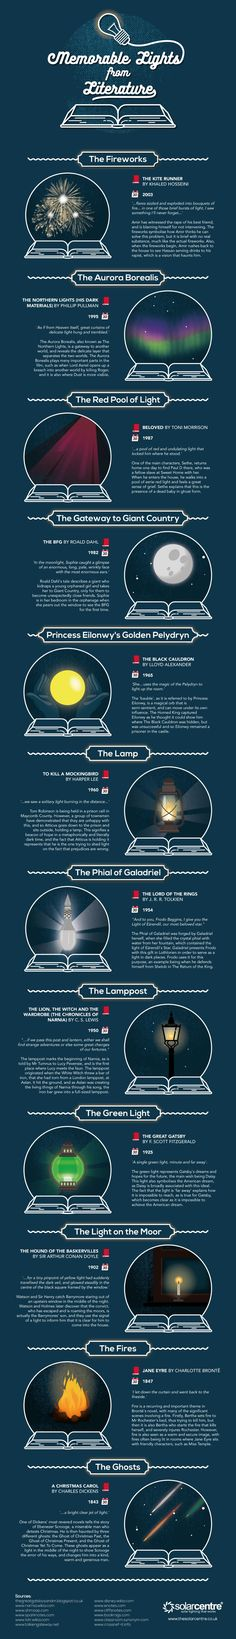 You may have read some of these novels; you may even have read and seen them all. But did you ever realize the significance of the lights, and how this contributed to the overall story?  Literature's most memorable sources of light #infographic